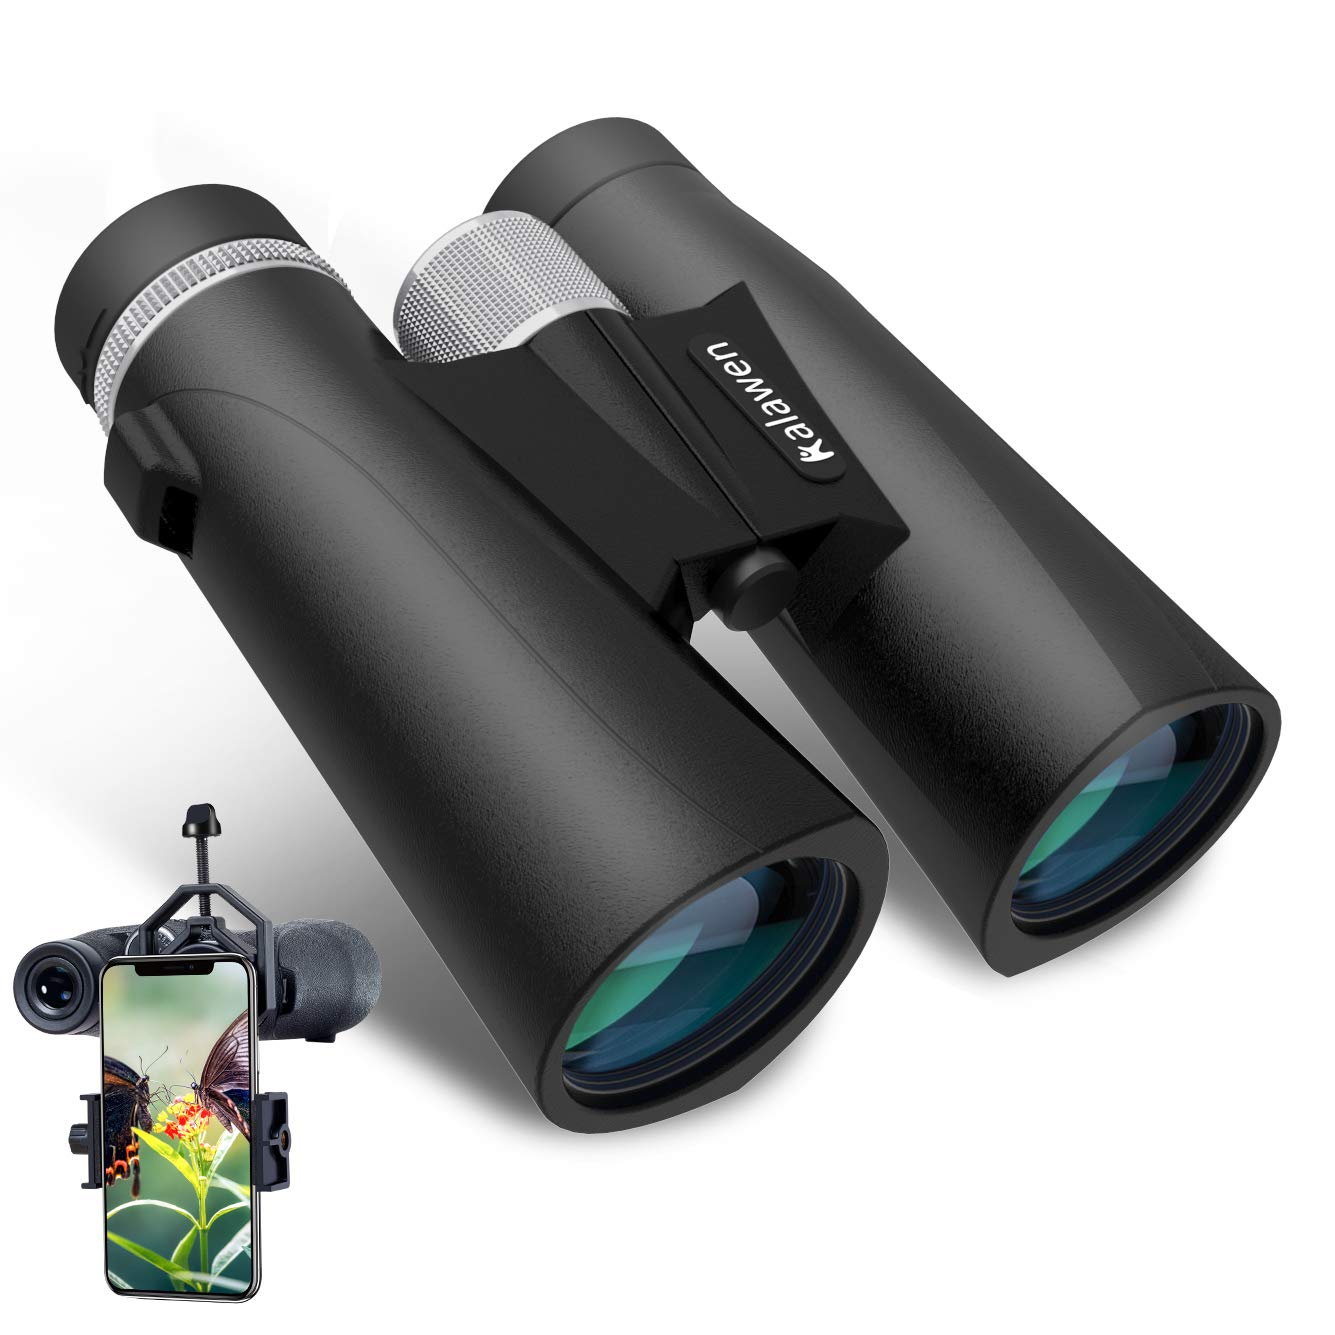 2019 Upgraded Binoculars with Night Vision Low Kalawen 10×42 Binoculars for Adults Compact Waterproof Fogproof Binoculars for Bird Watching Concert Theater Opera Stargazing Hunting Traveling